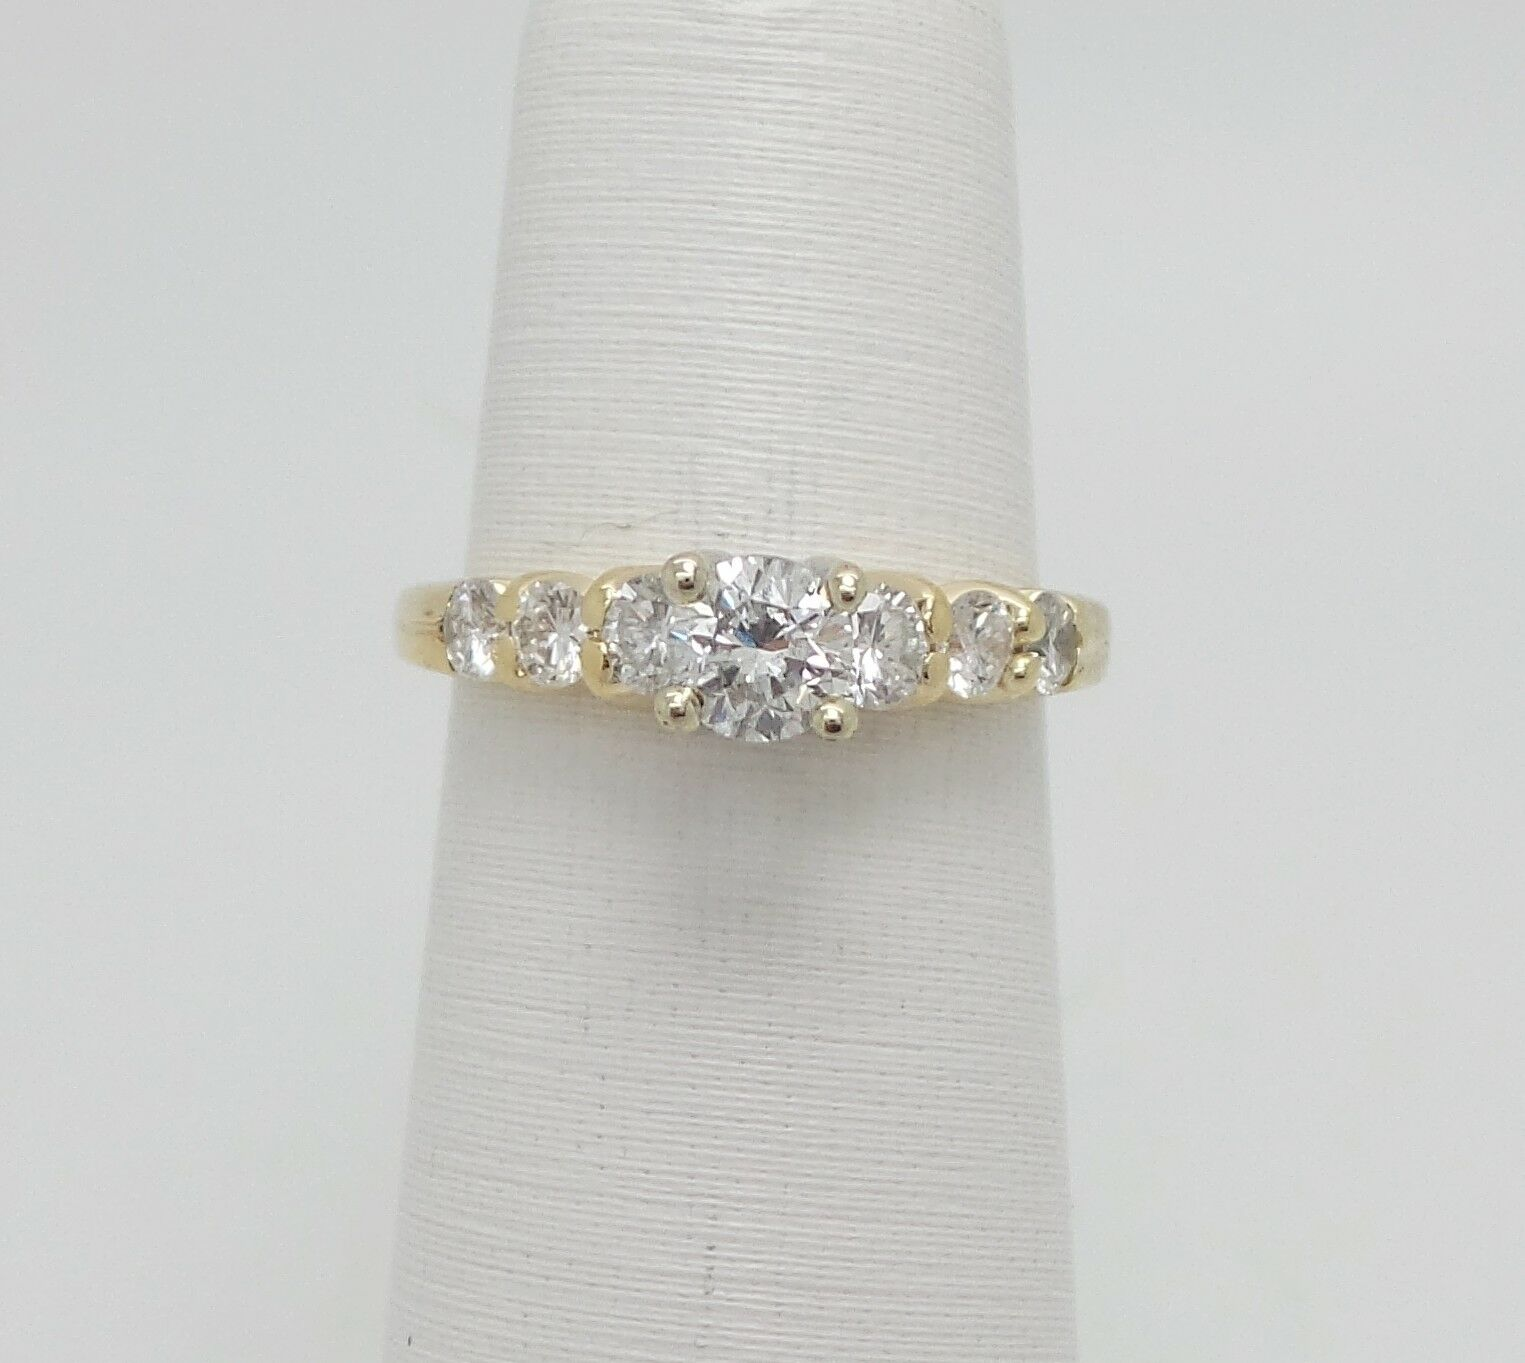 Zales 1CT Diamond Solitaire Engagement Wedding Bridal Ring 14K Yellow gold